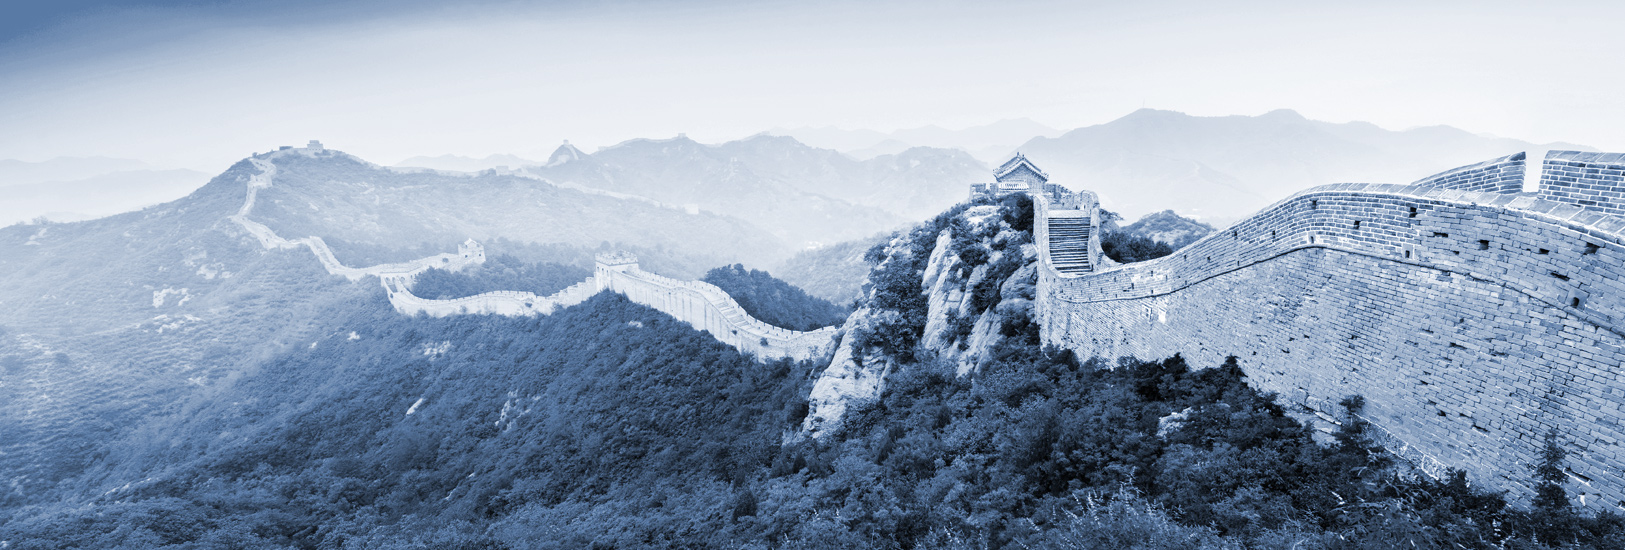 banner-great-wall-of-china